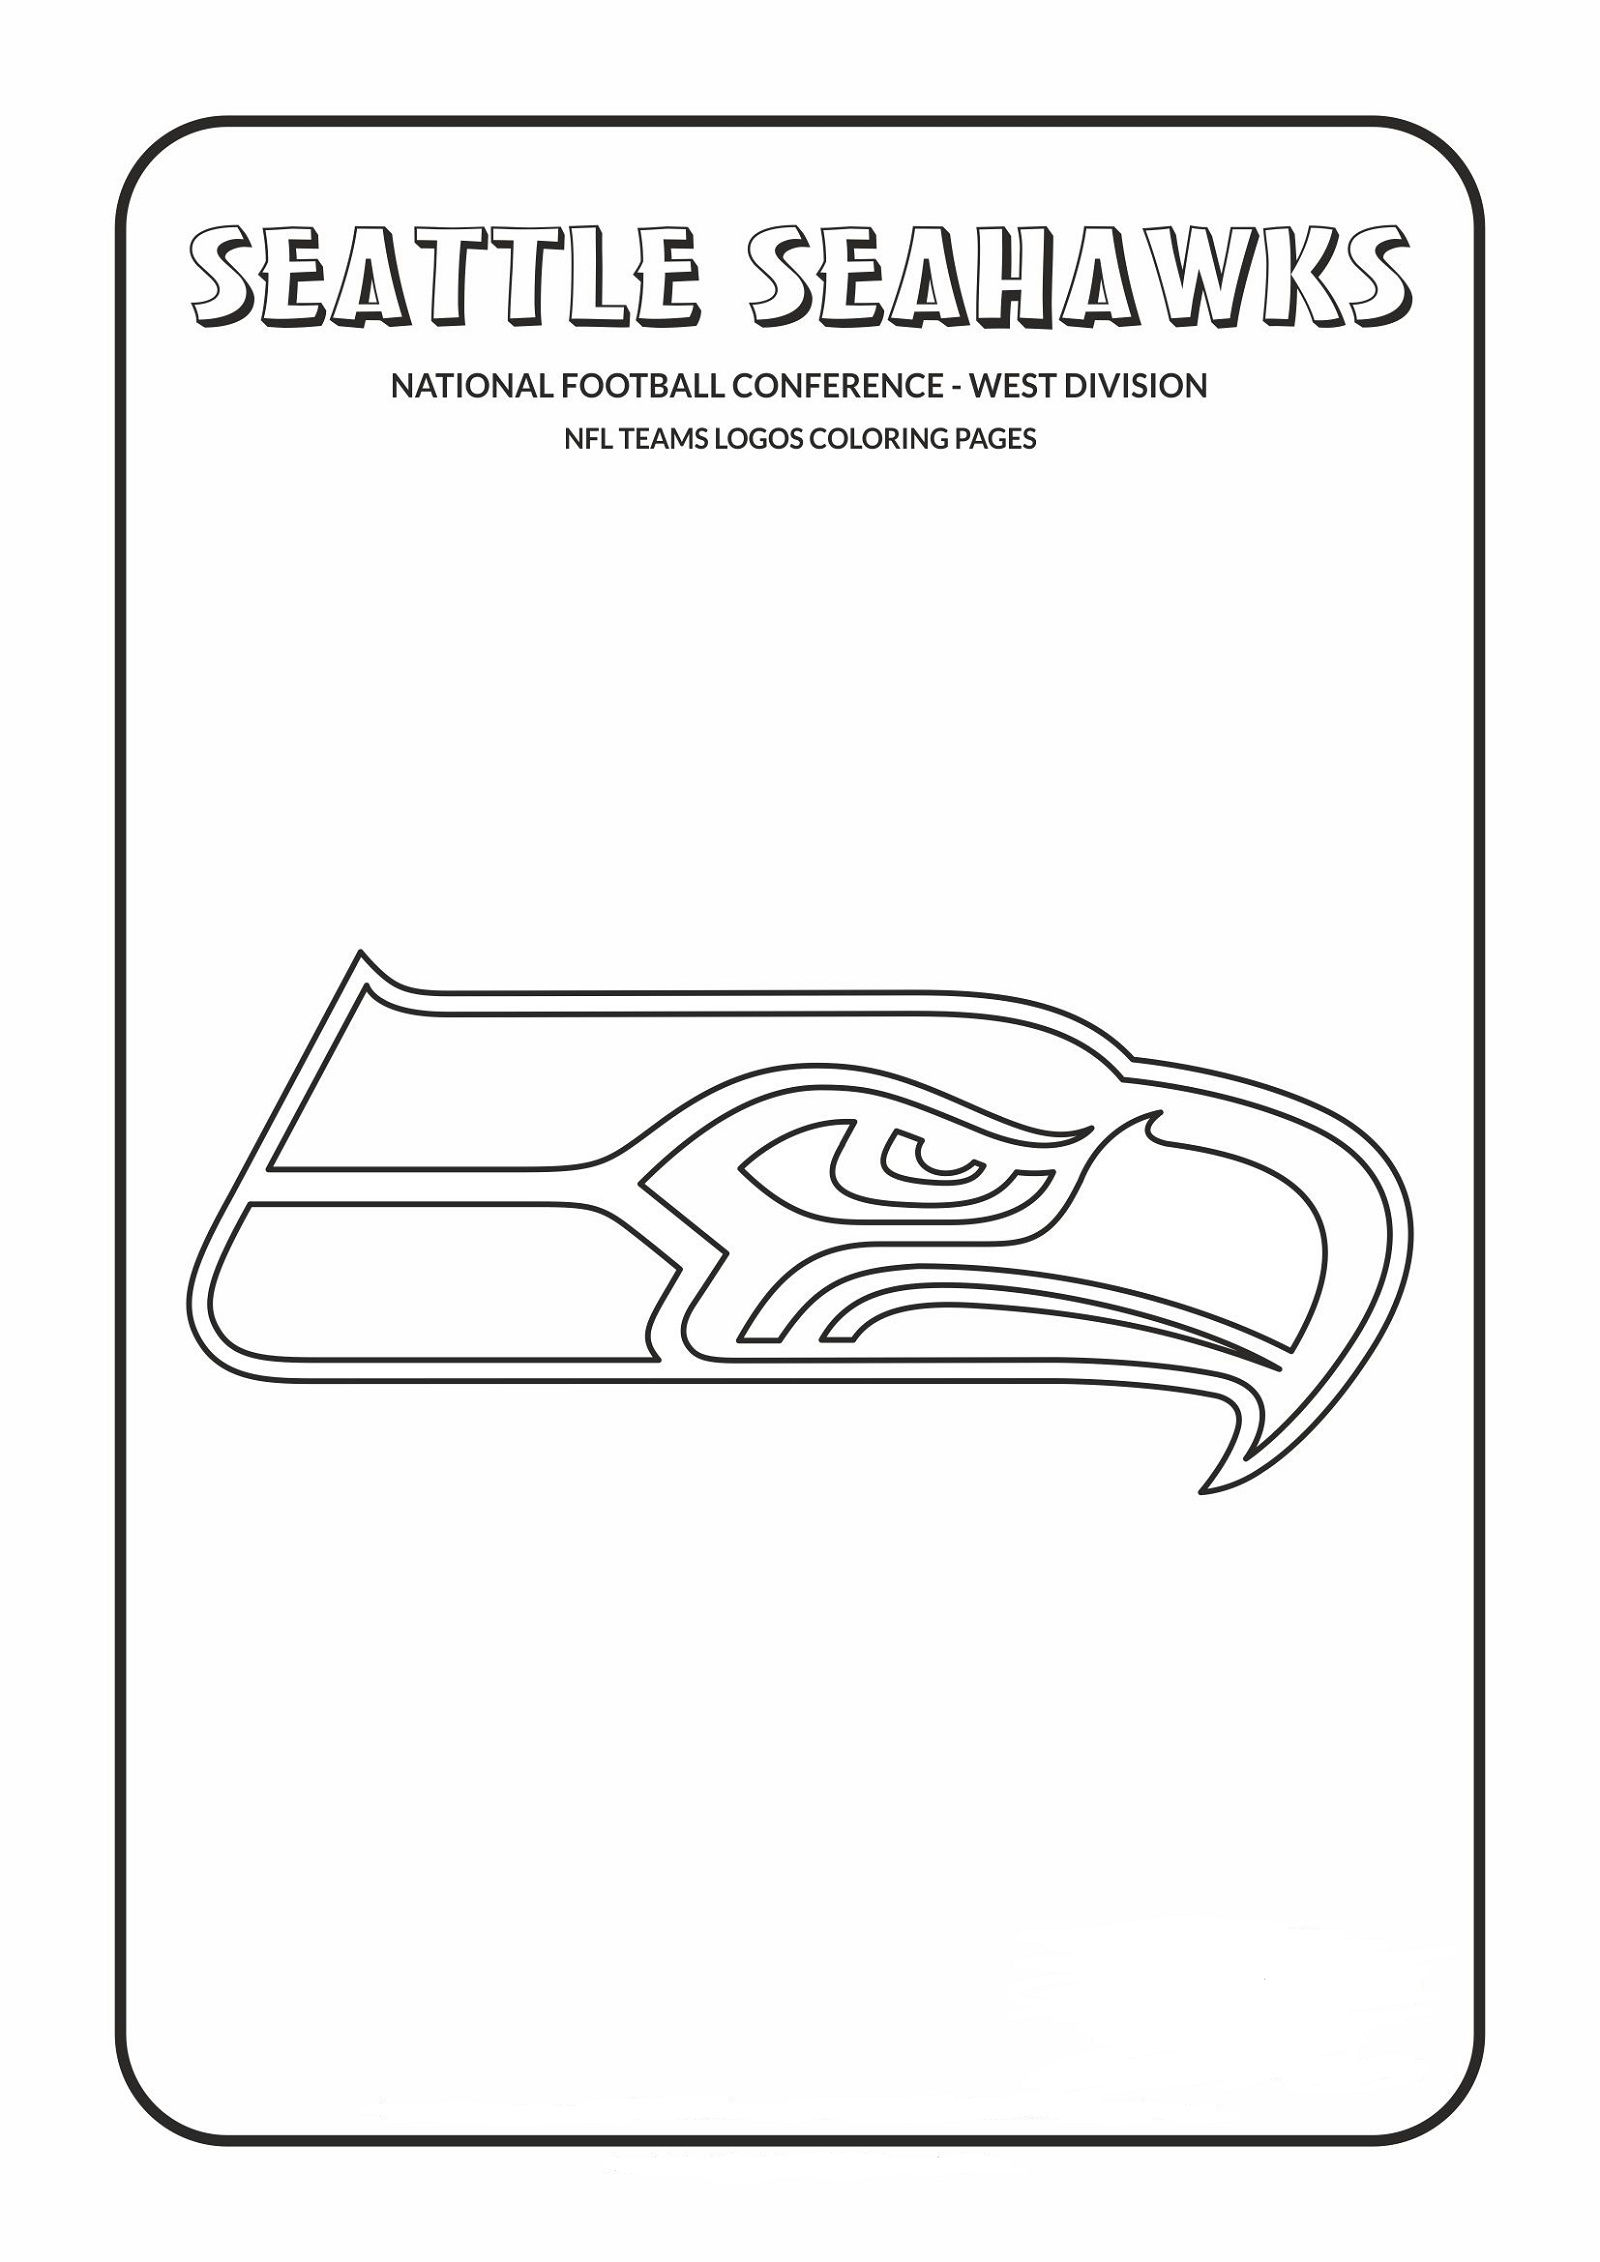 seahawks coloring pages to print seattle seahawks logo coloring pages seattle seahawks pages to seahawks coloring print